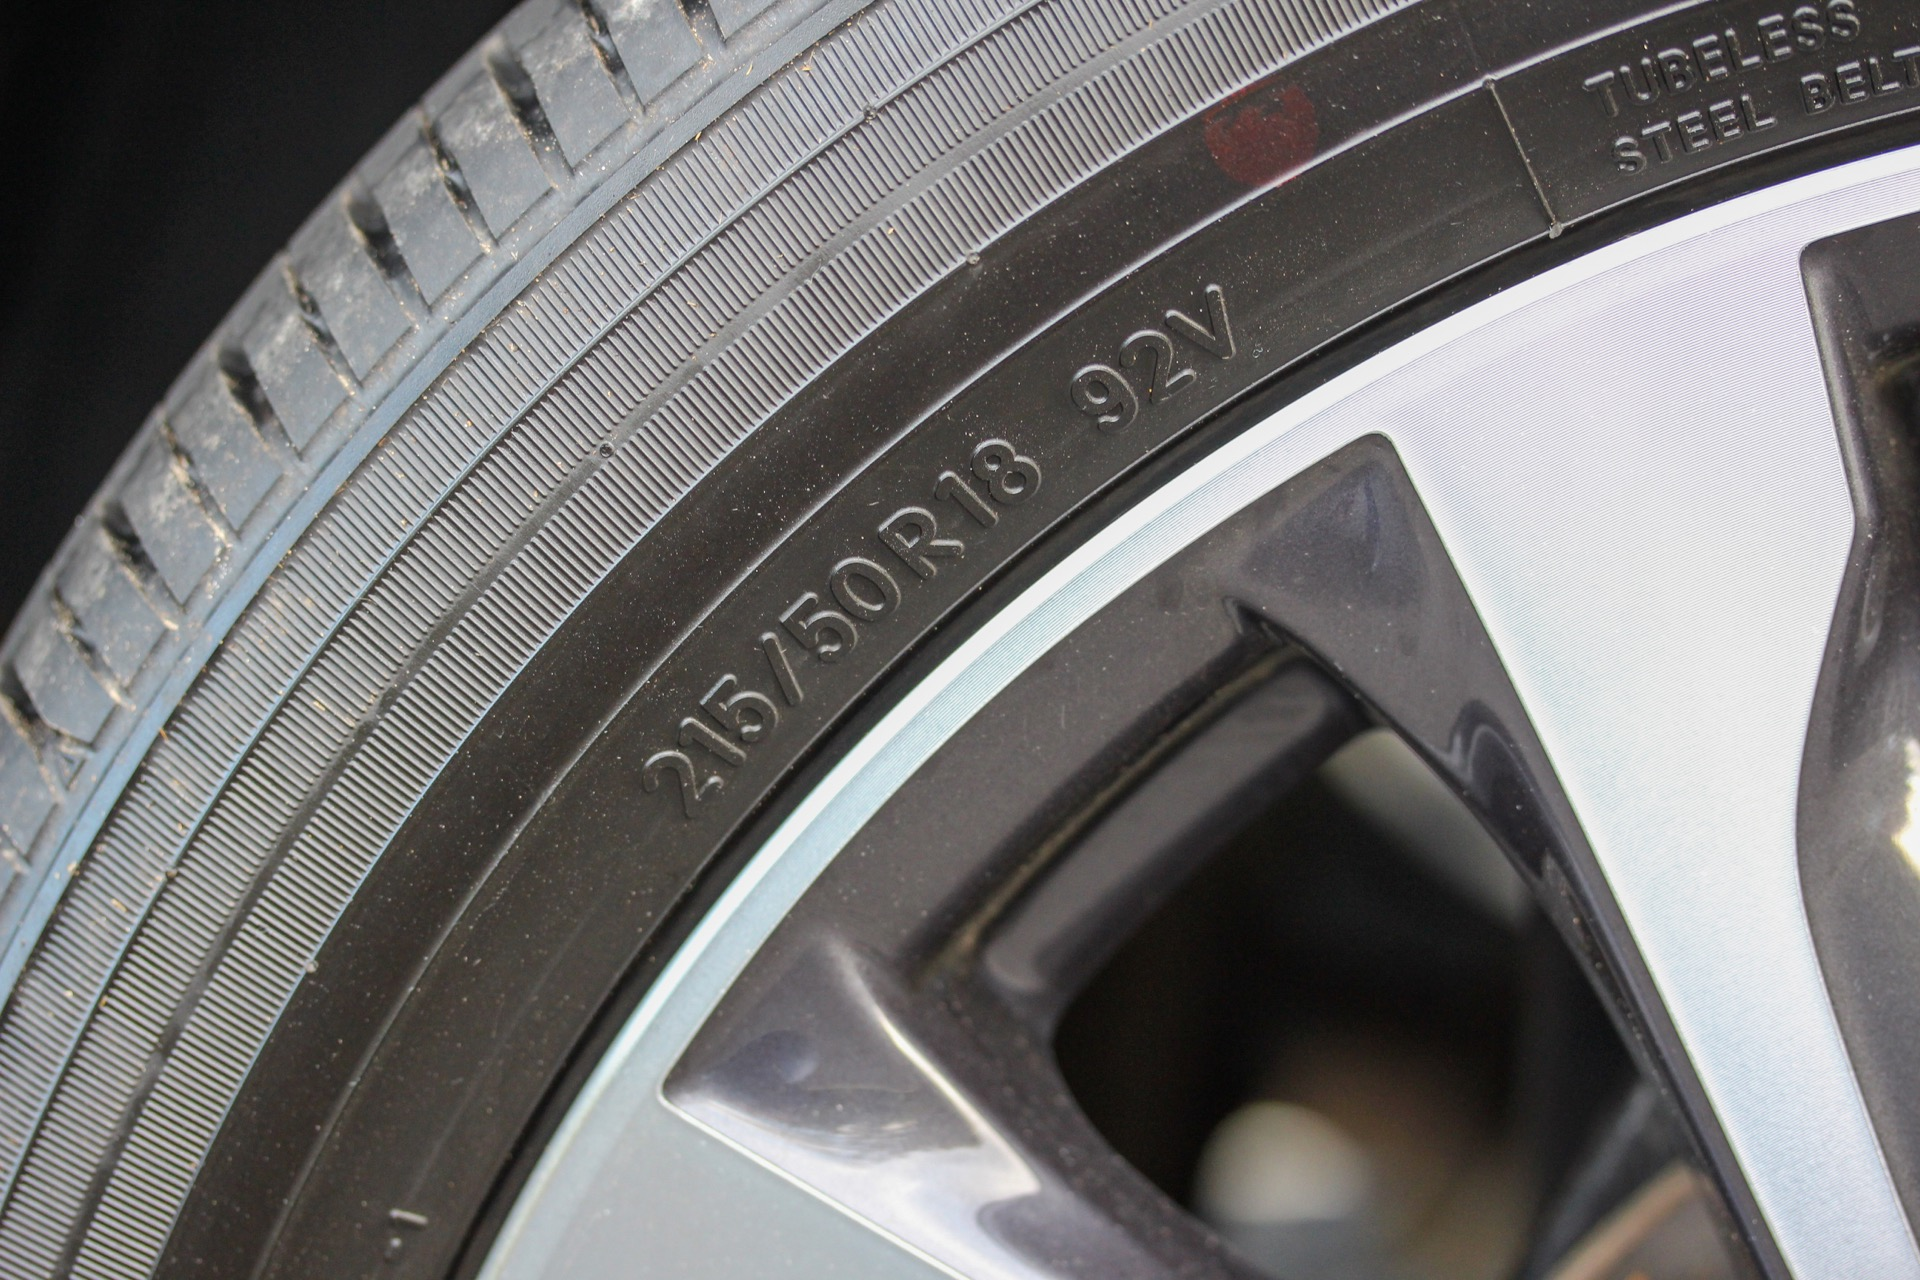 Tire info on sidewall